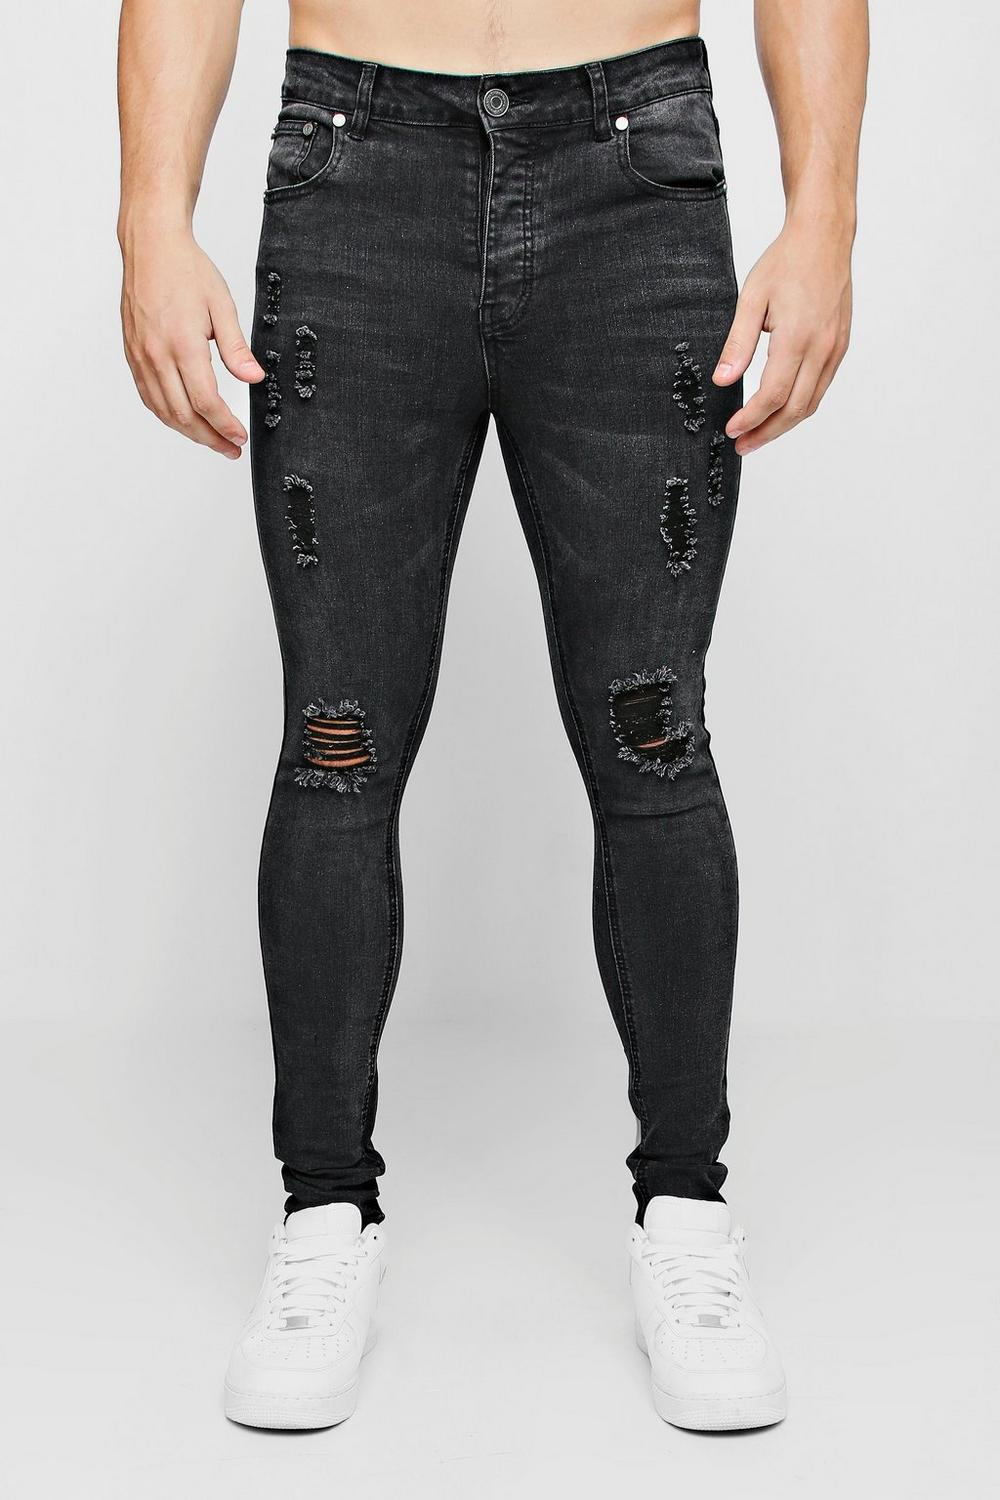 3b155c2b9a Ripped Knee Spray on Skinny Jeans. Hover to zoom